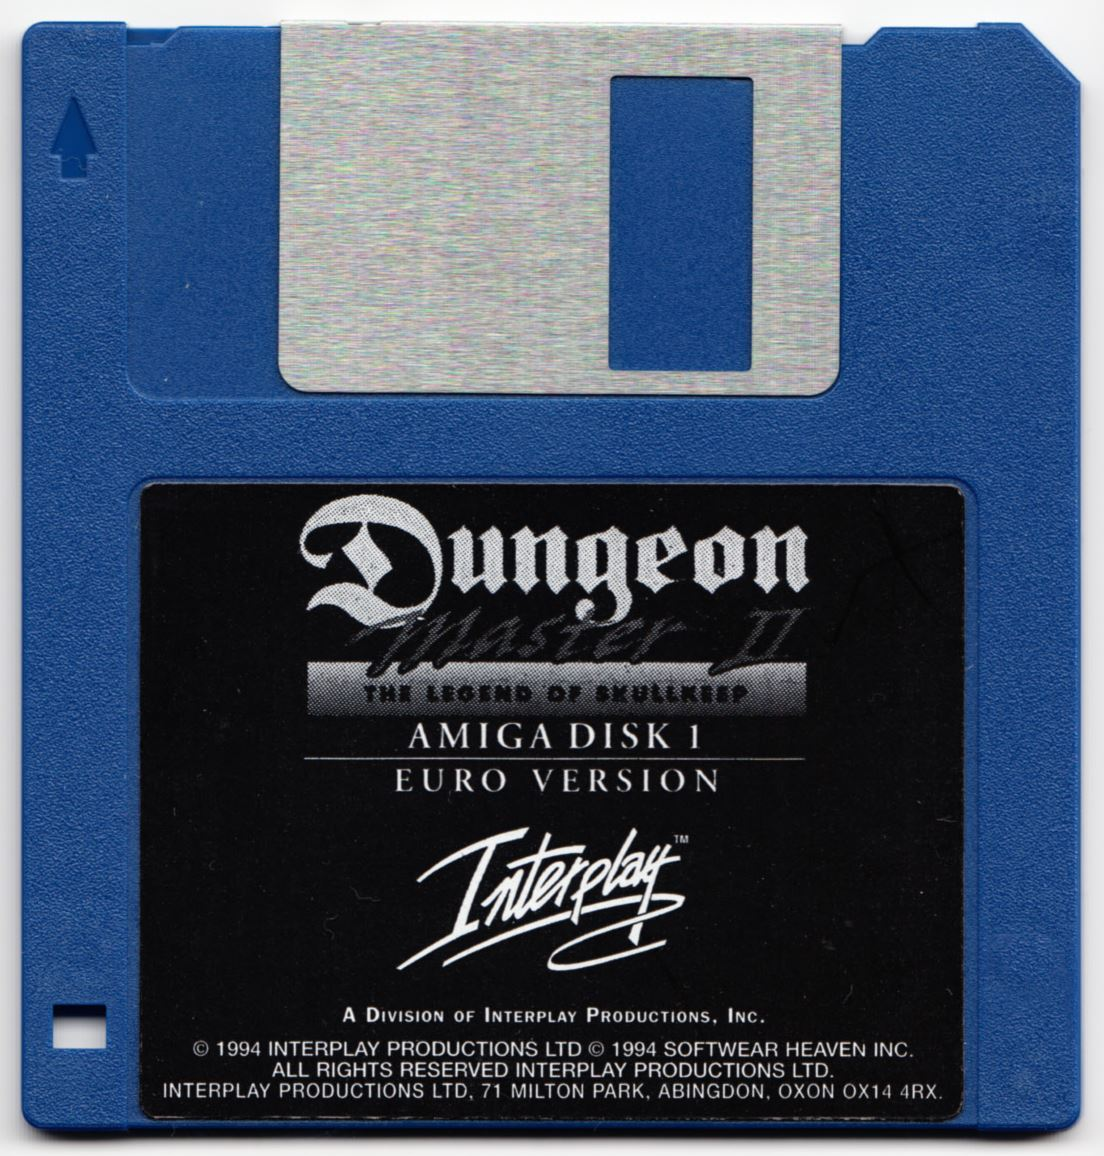 Game - Dungeon Master II - UK - Amiga - Disk 1 - Front - Scan